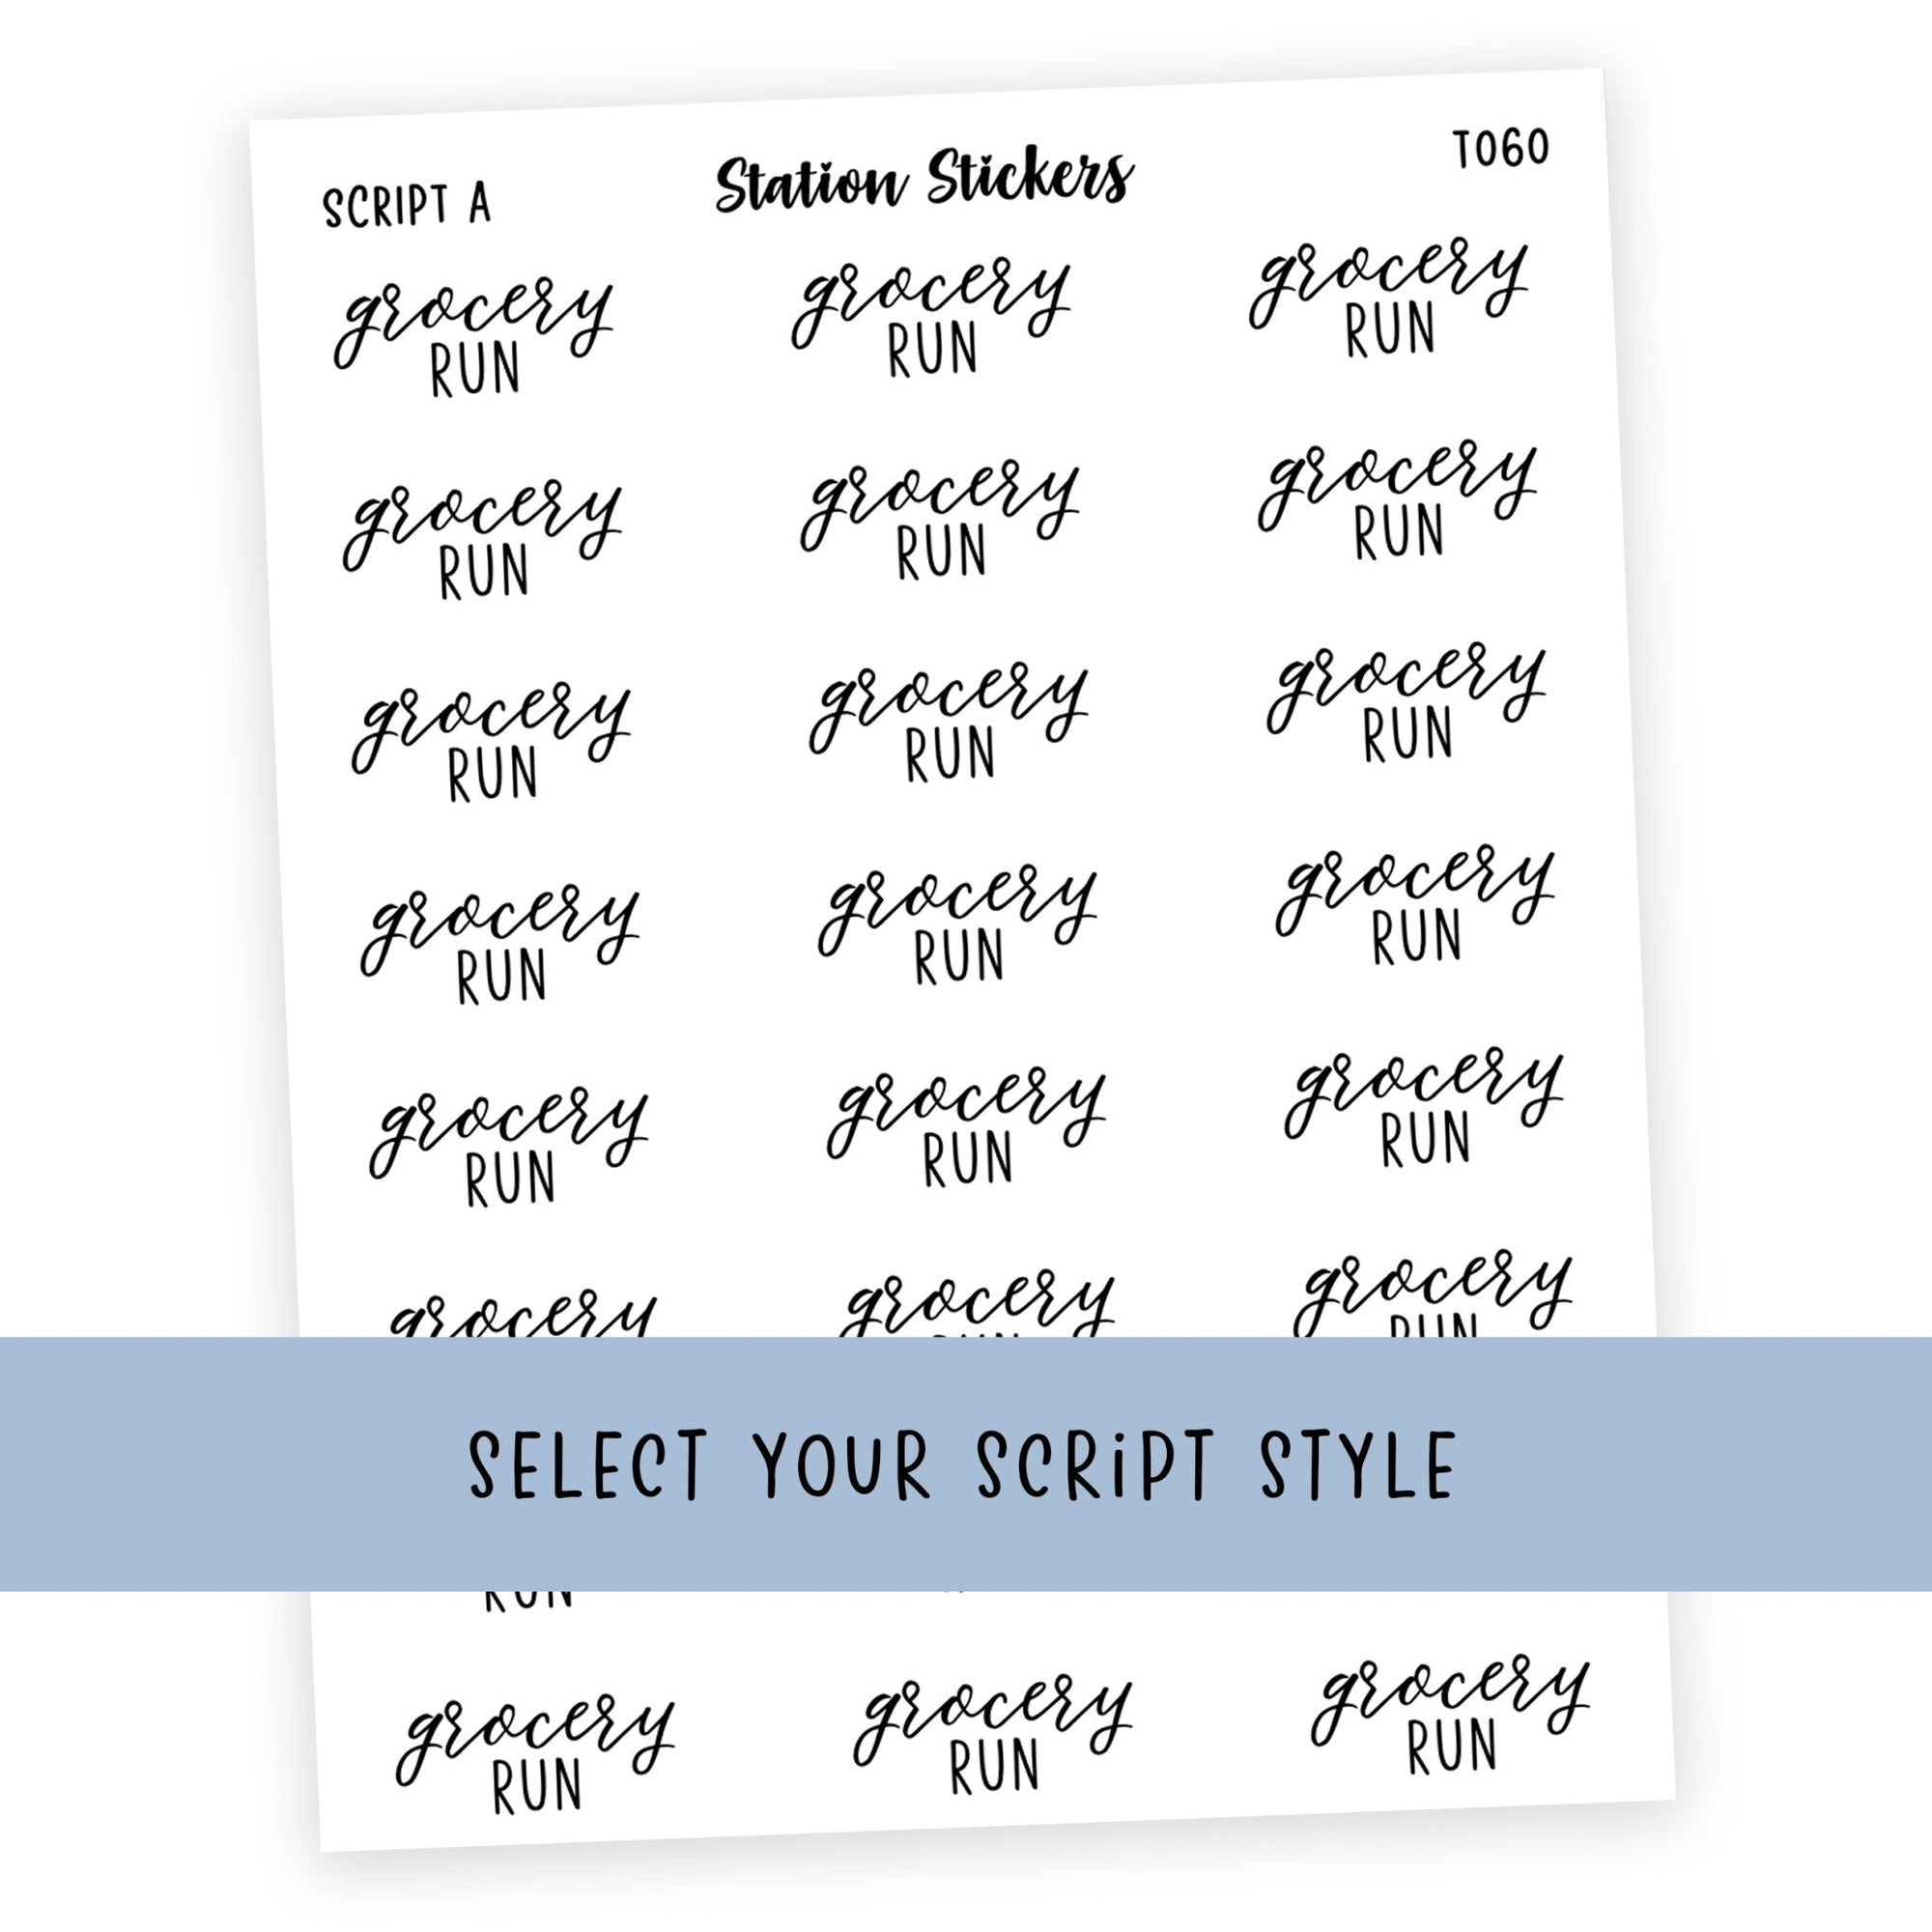 GROCERY RUN • SCRIPTS - Station Stickers